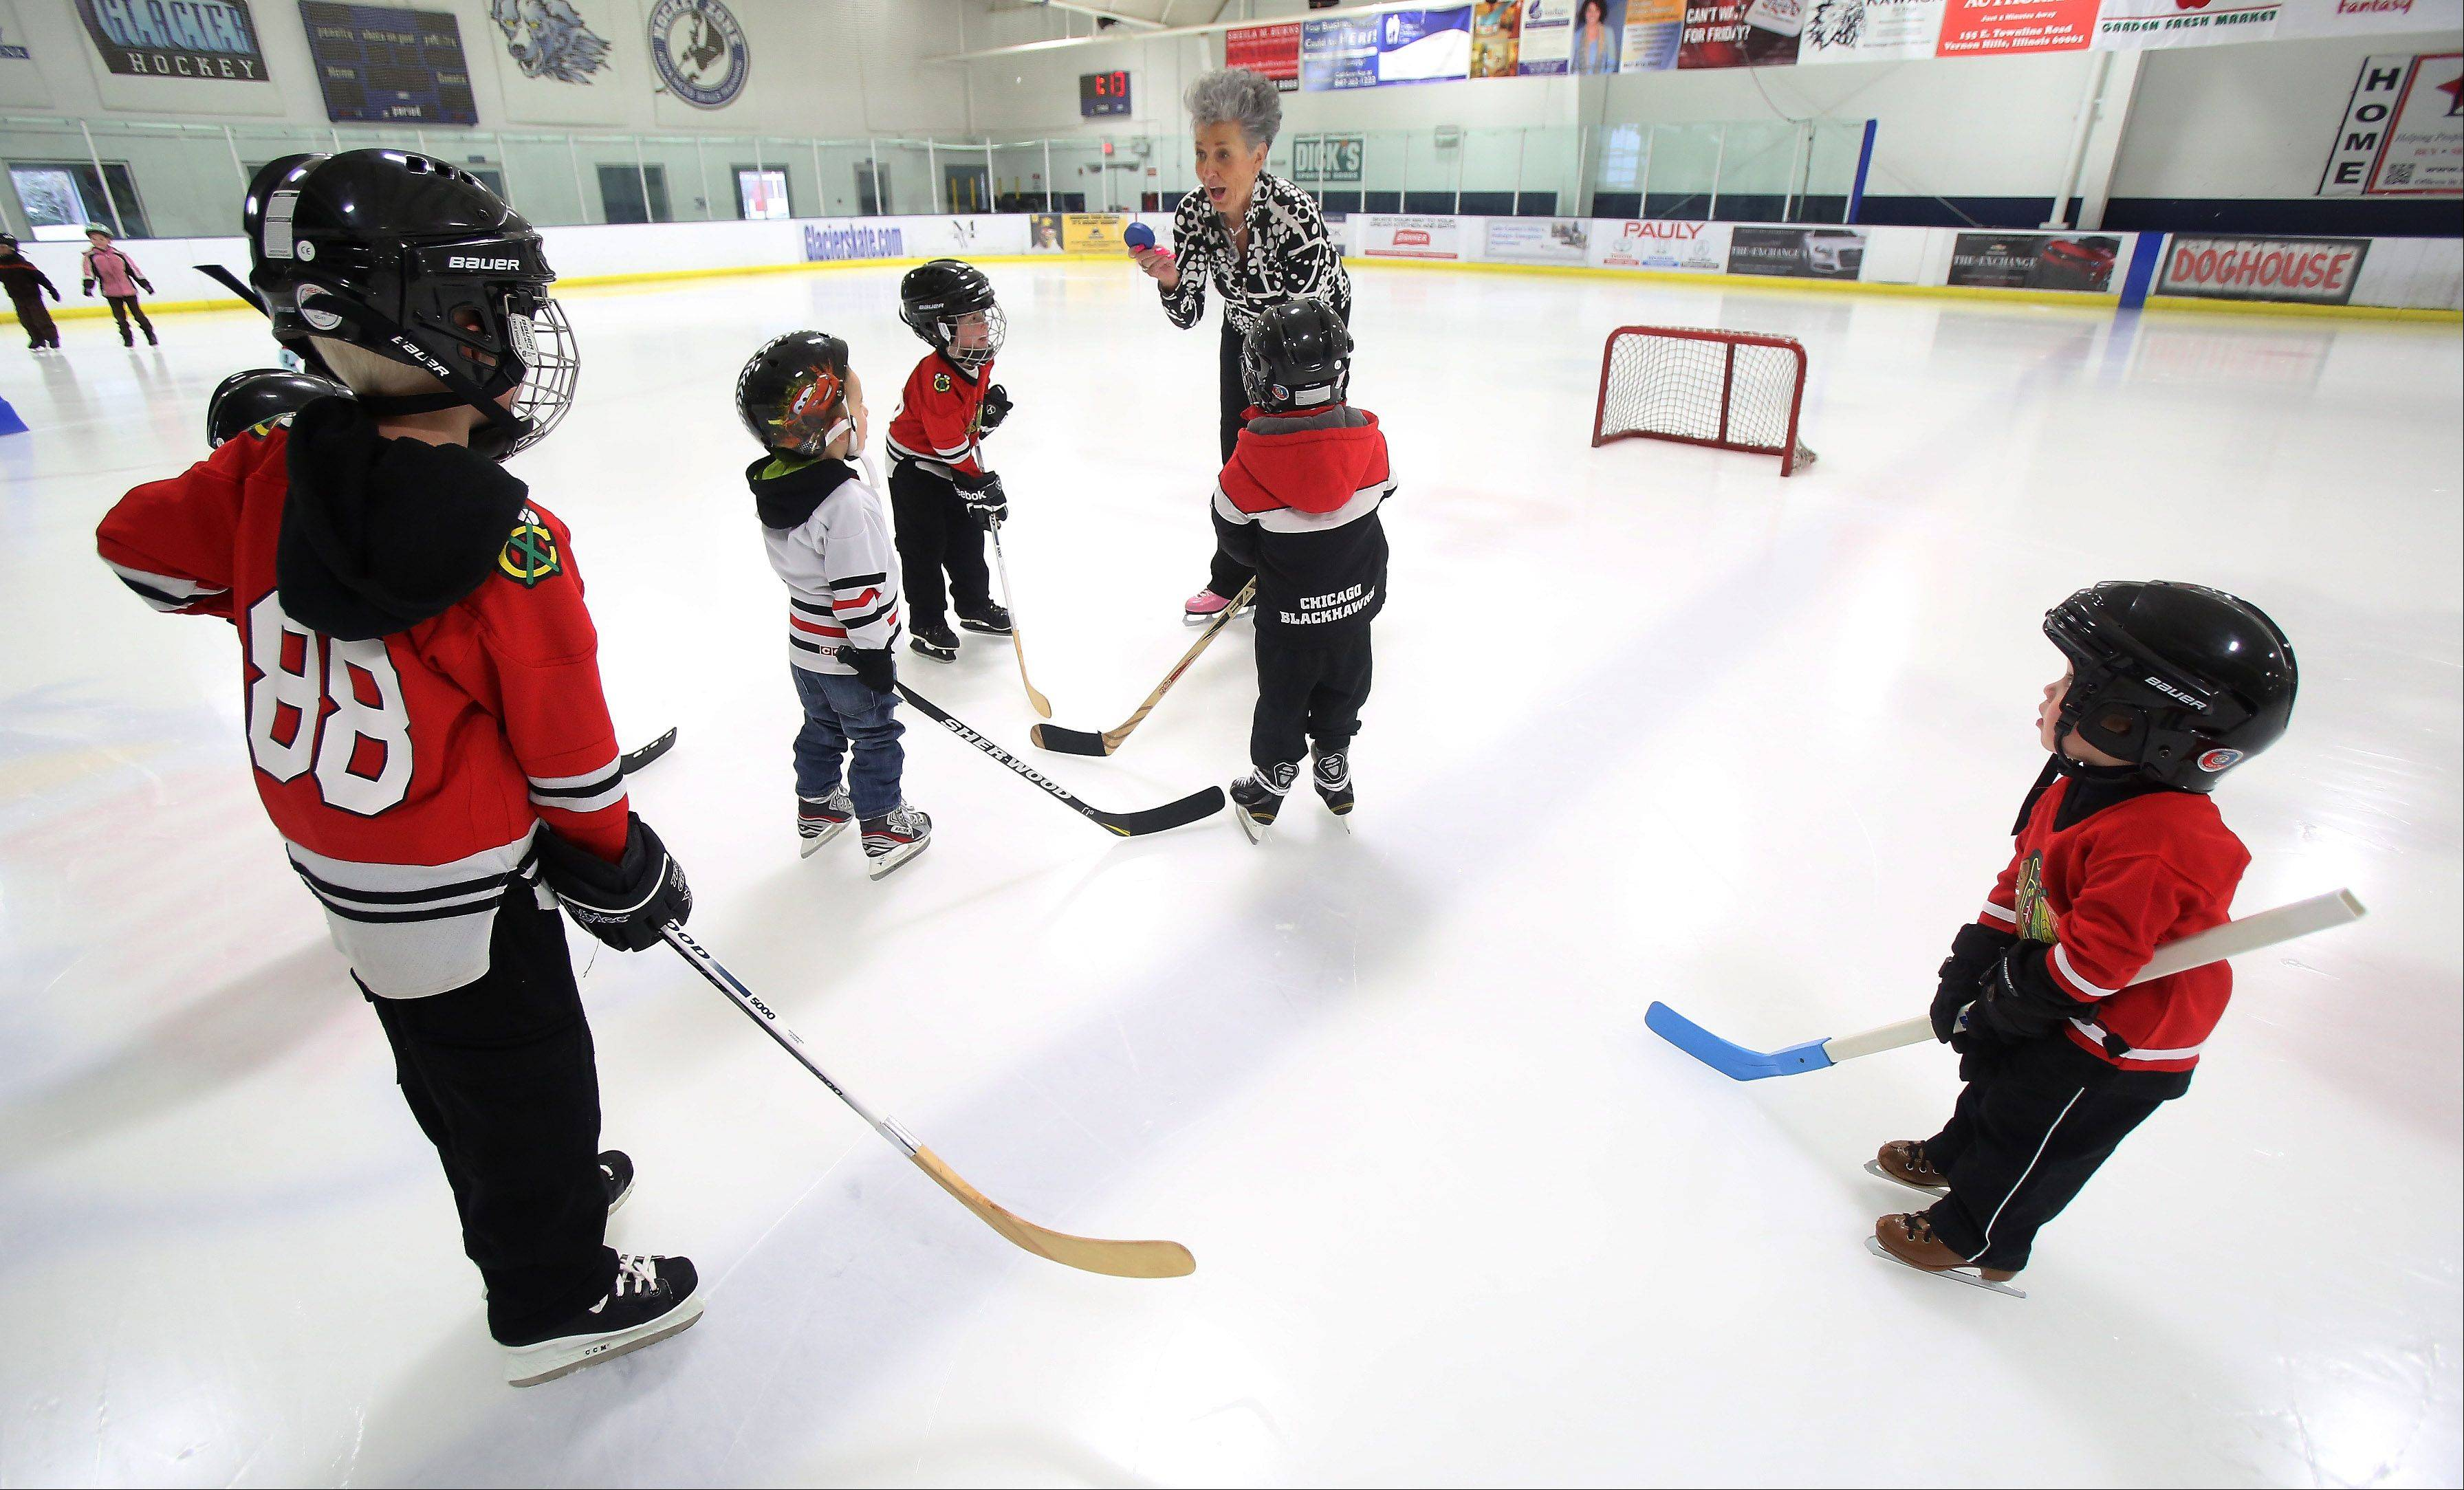 Karen Kay Lavris teaches youngsters to play hockey at Glacier Ice Arena in Vernon Hills.